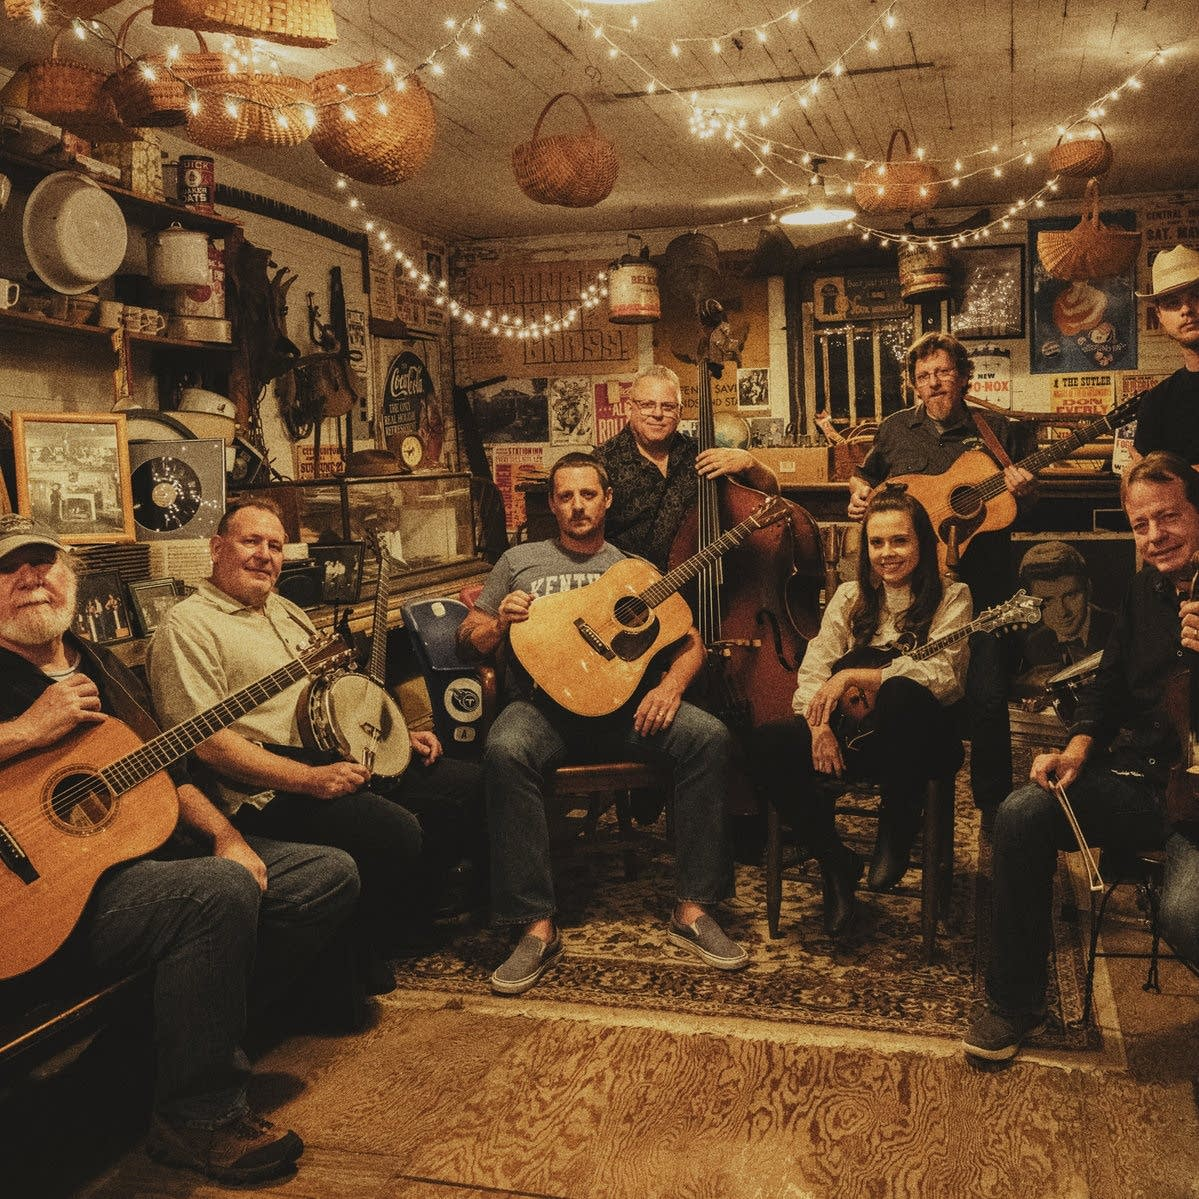 Sturgill Simpson and a crew of bluegrass players